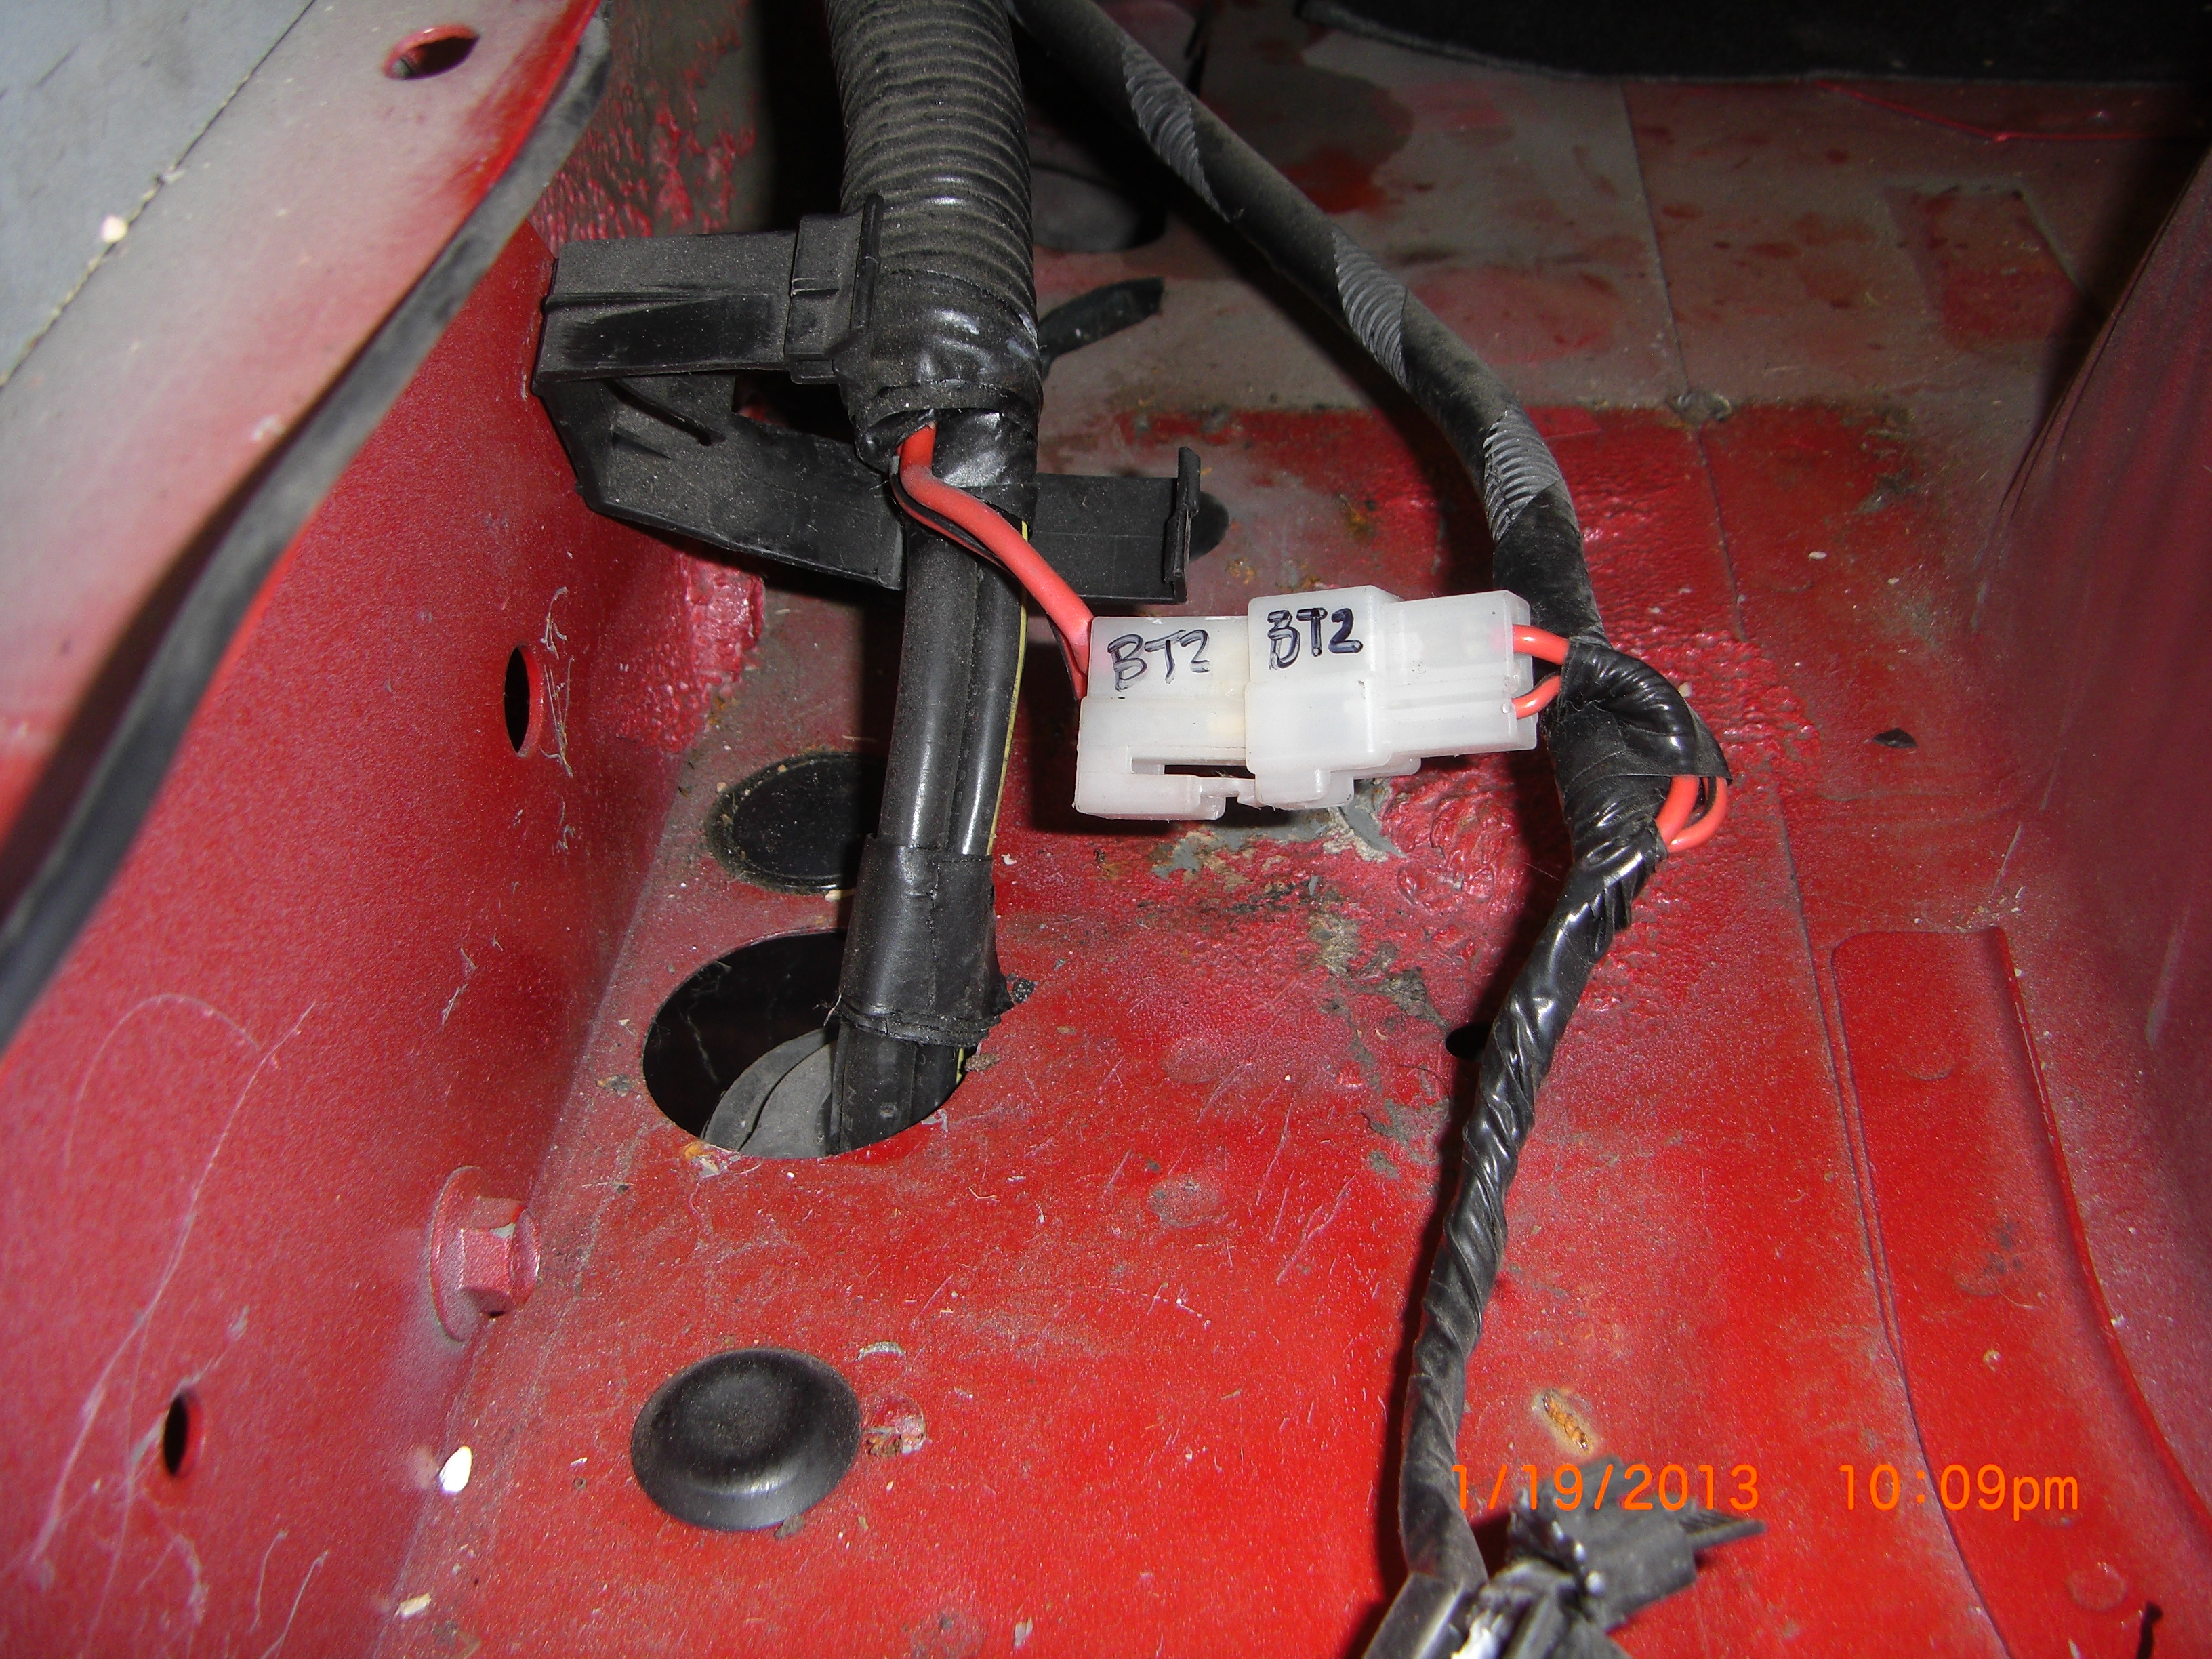 Miata Wiring Harness Removal : Removing miata donor parts of how do you remove a